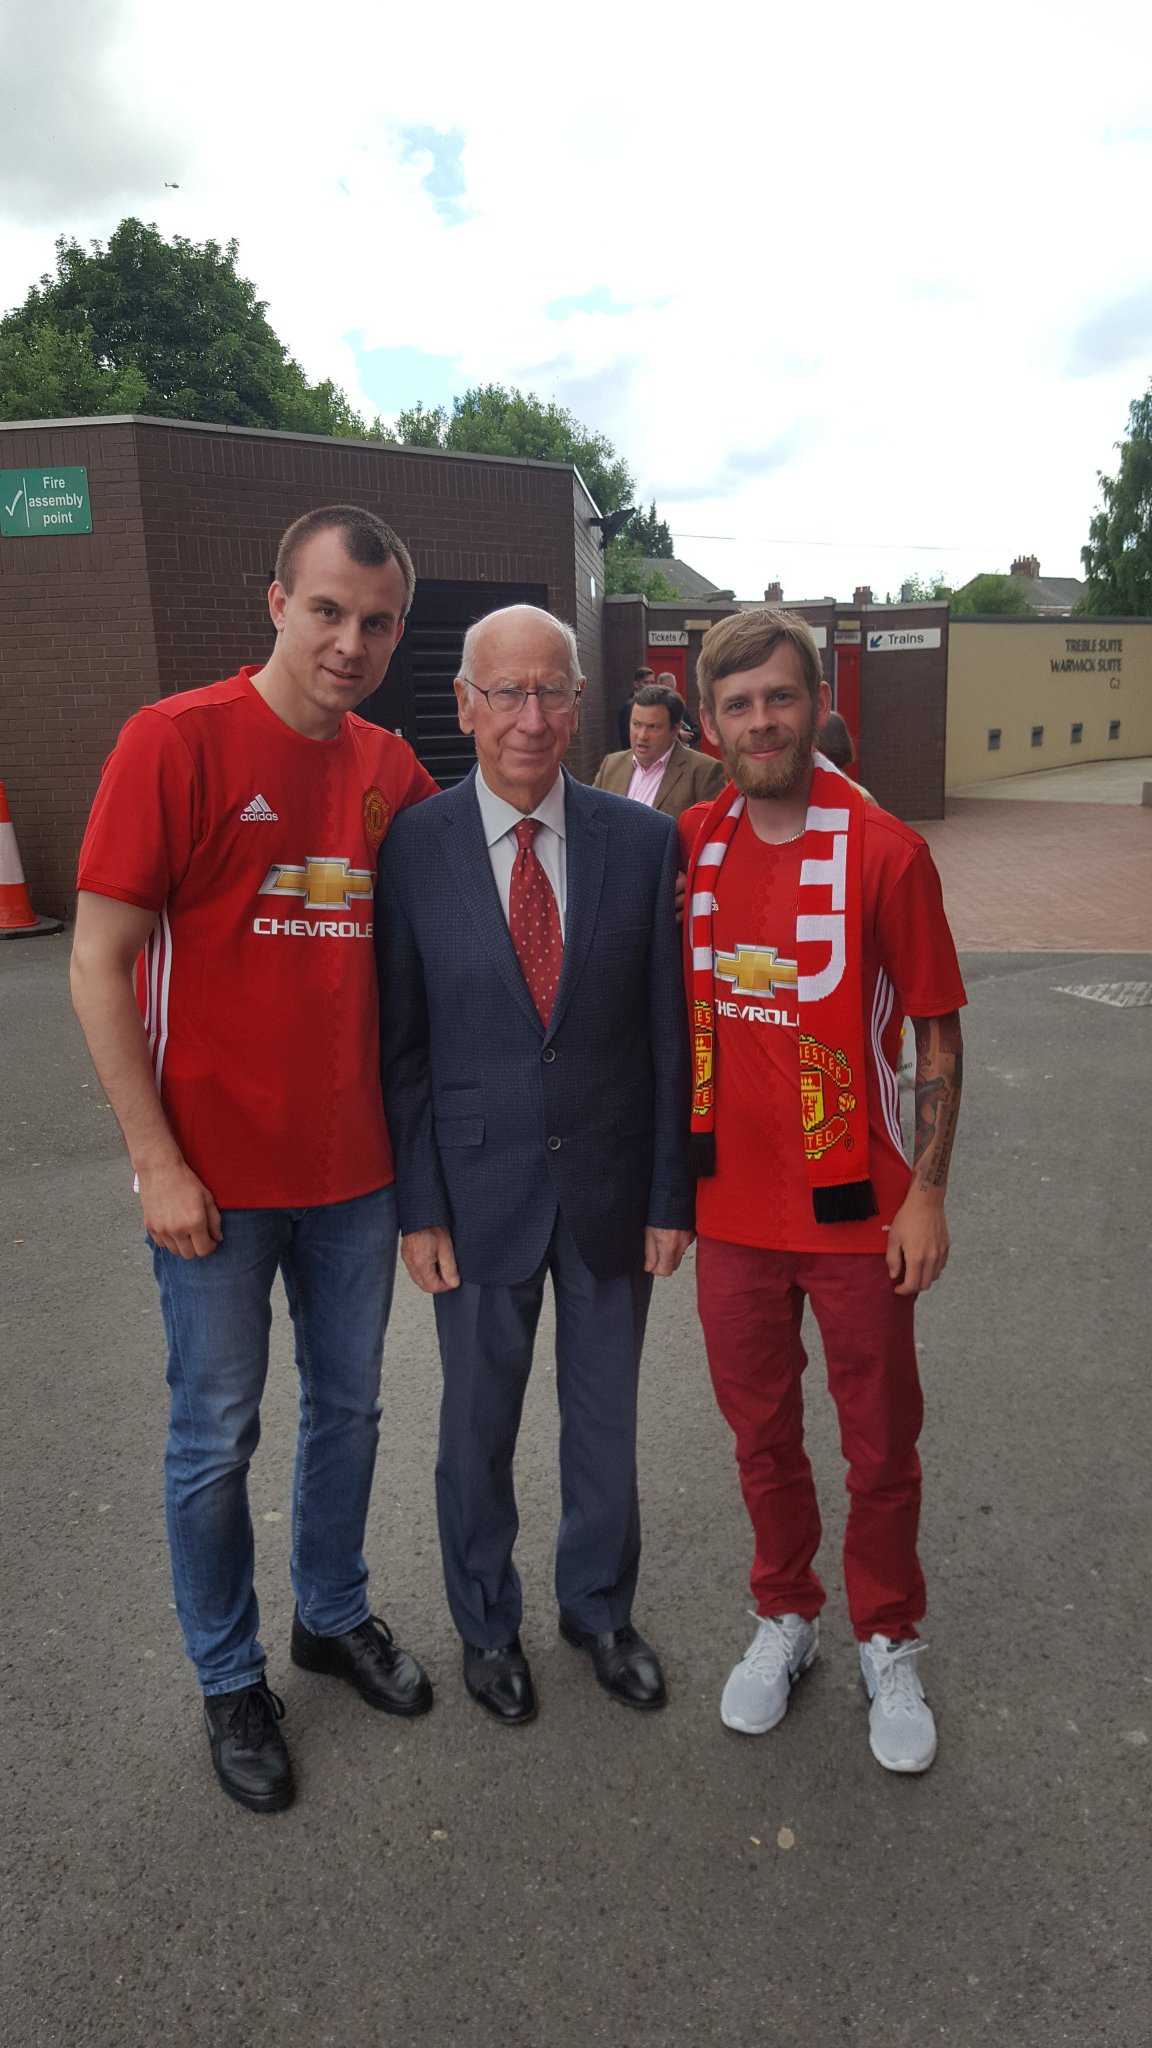 Happy birthday to my personal hero and legend, Sir Bobby Charlton.